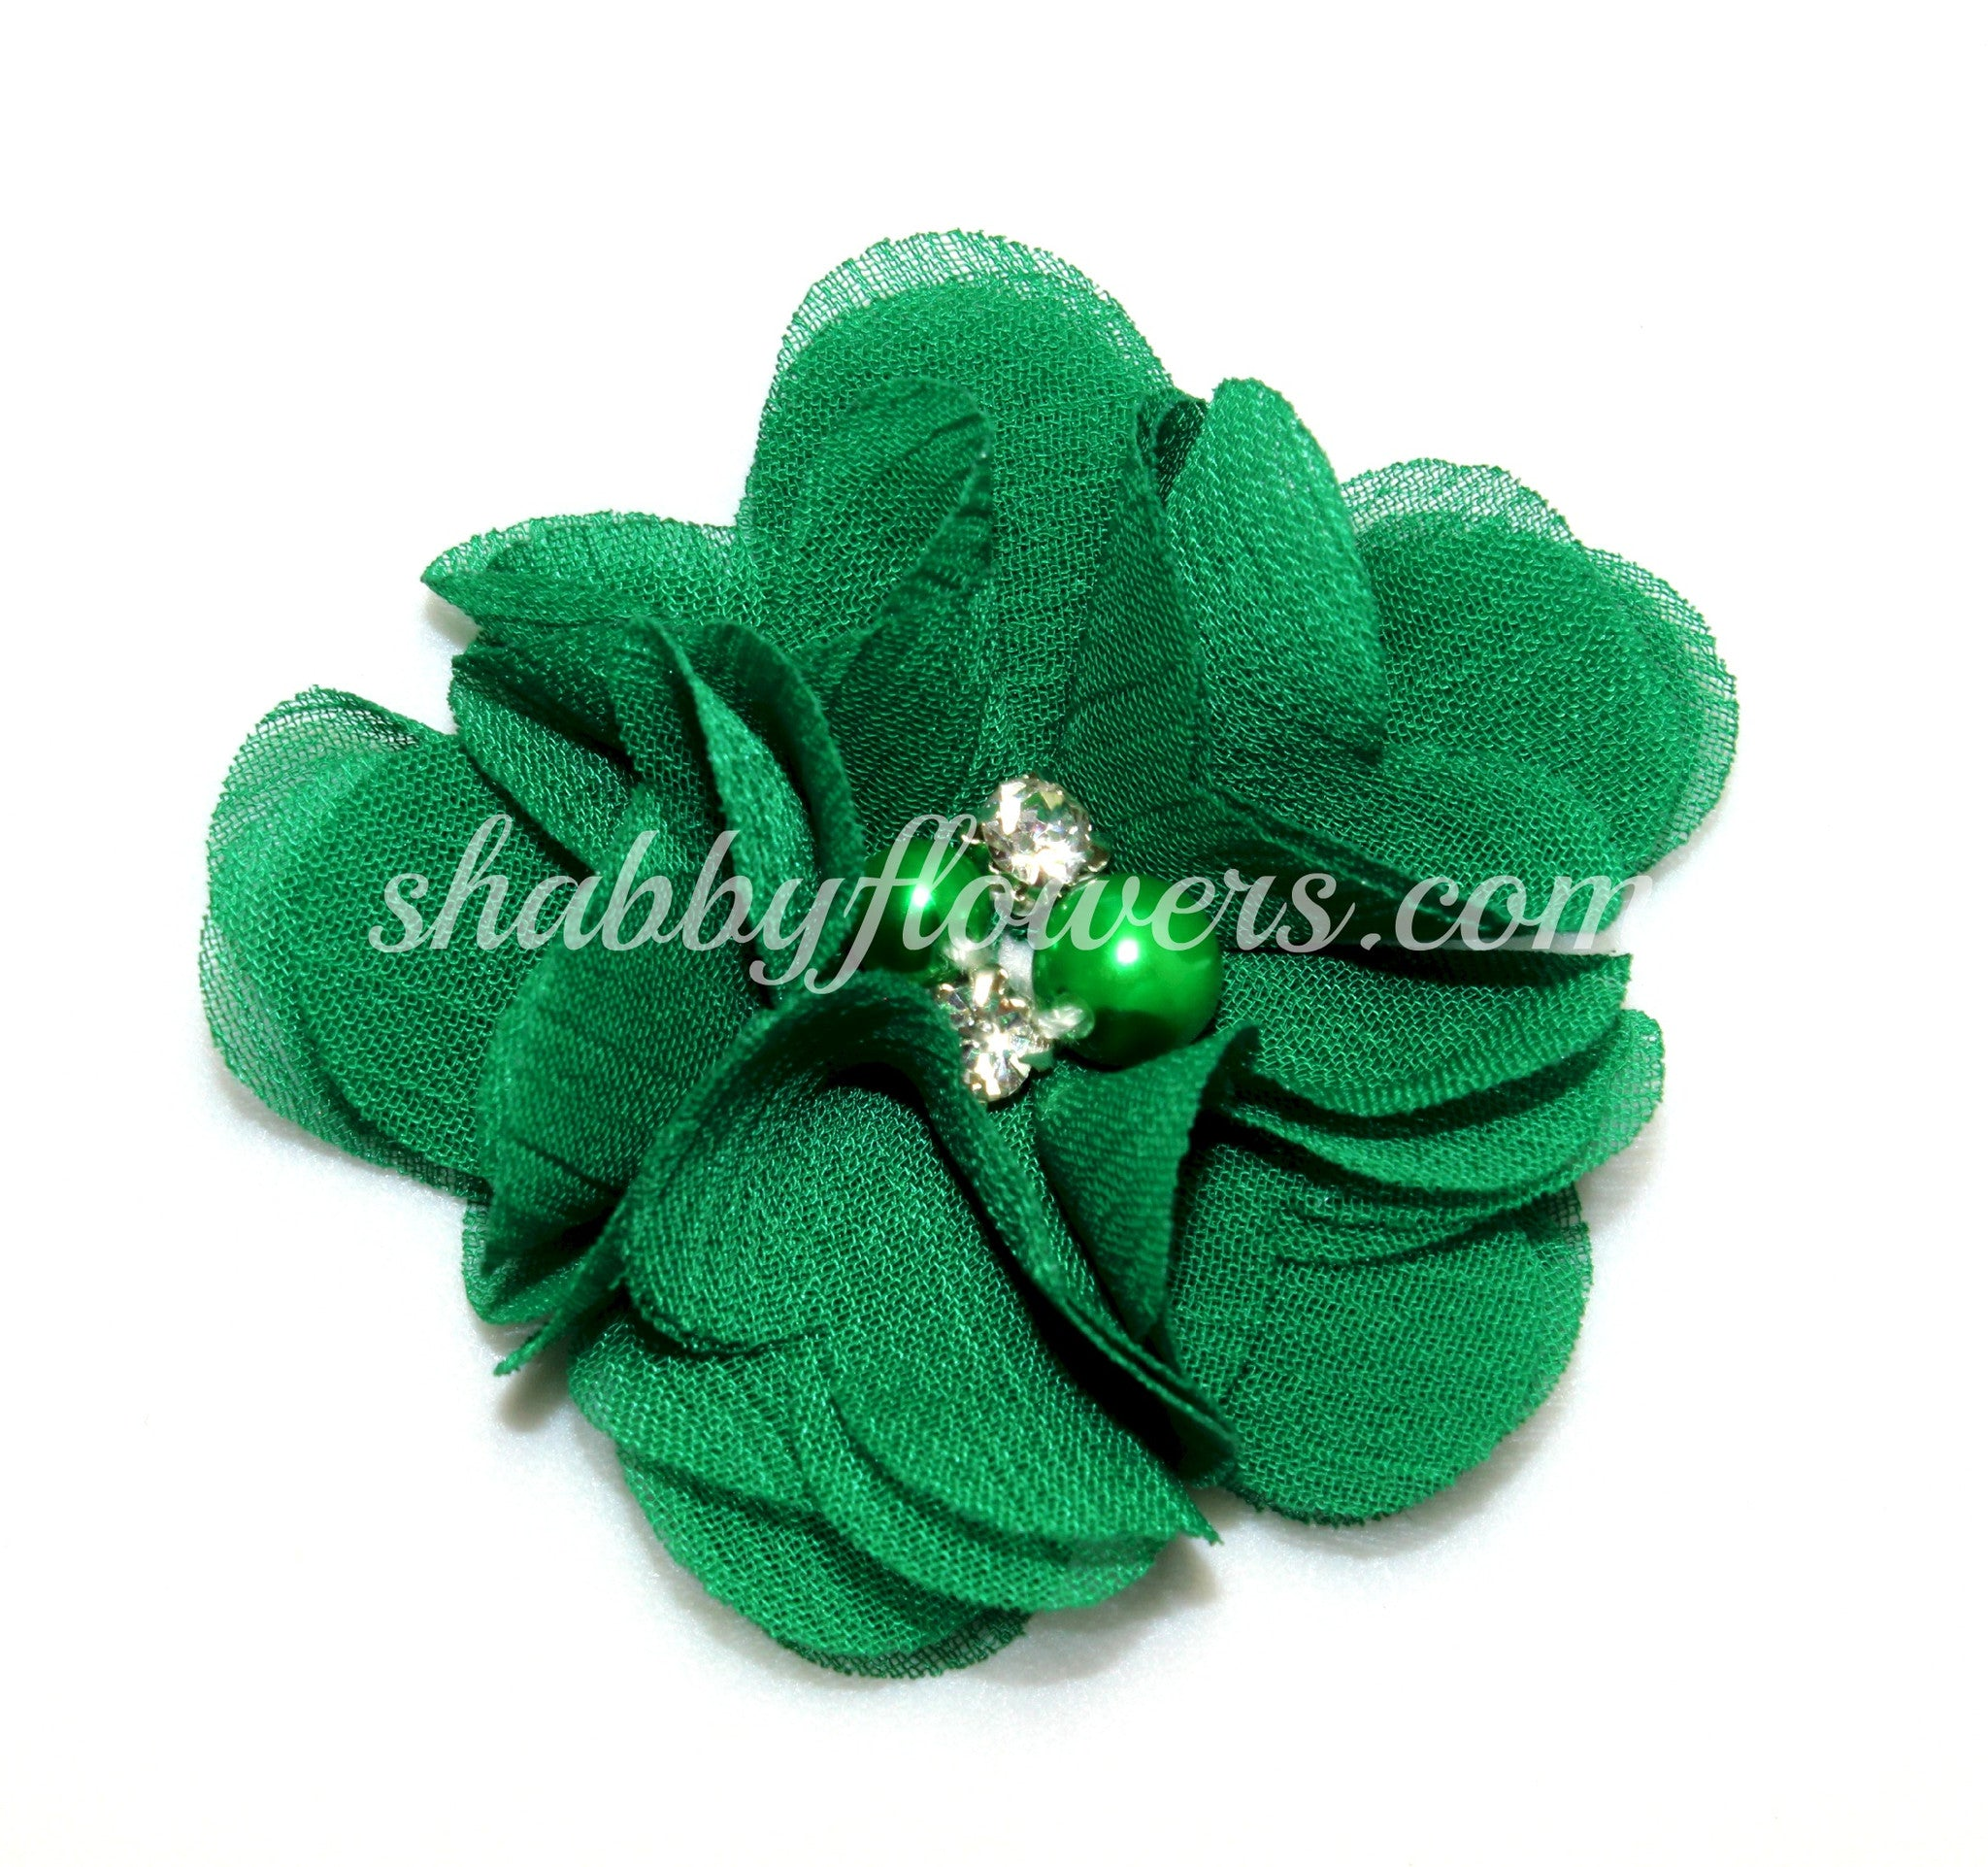 Pearl & Rhinestone Flower- Emerald Green - shabbyflowers.com